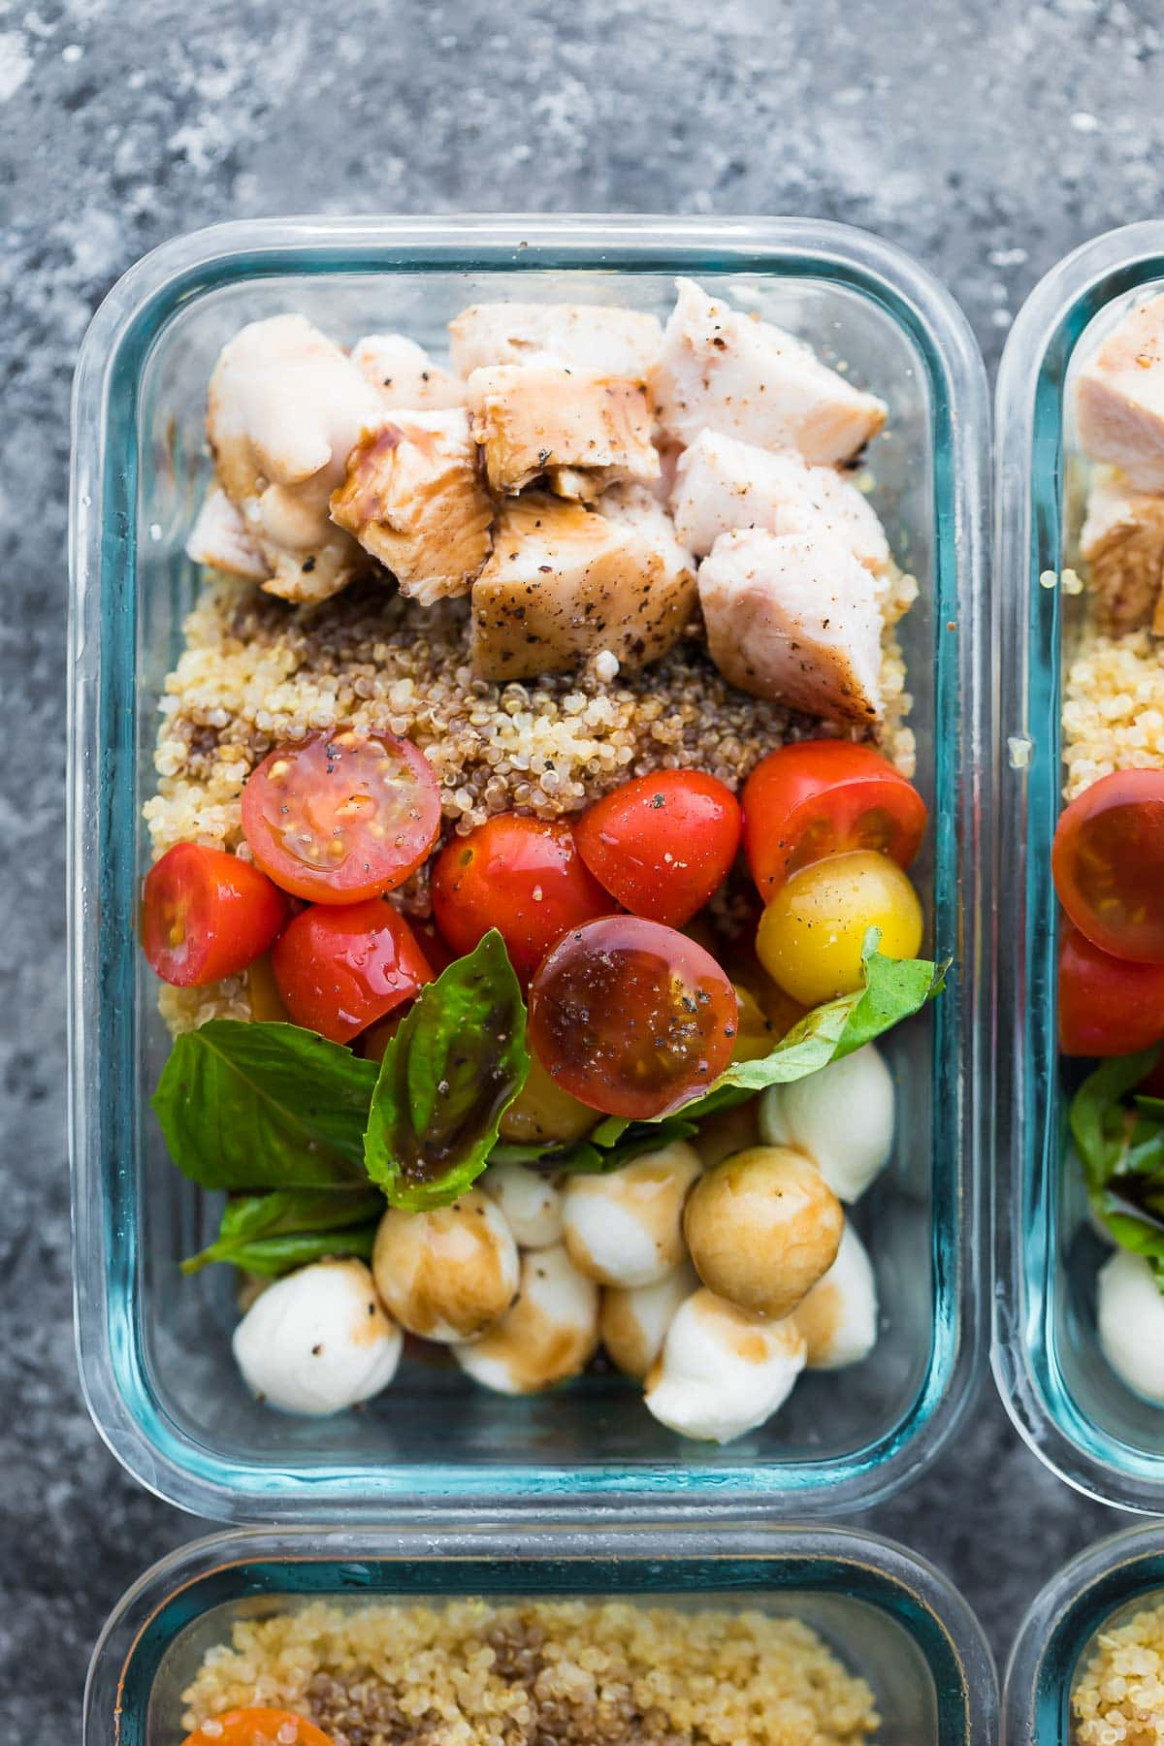 11 Healthy Lunch Ideas For Work - lunch recipes chicken